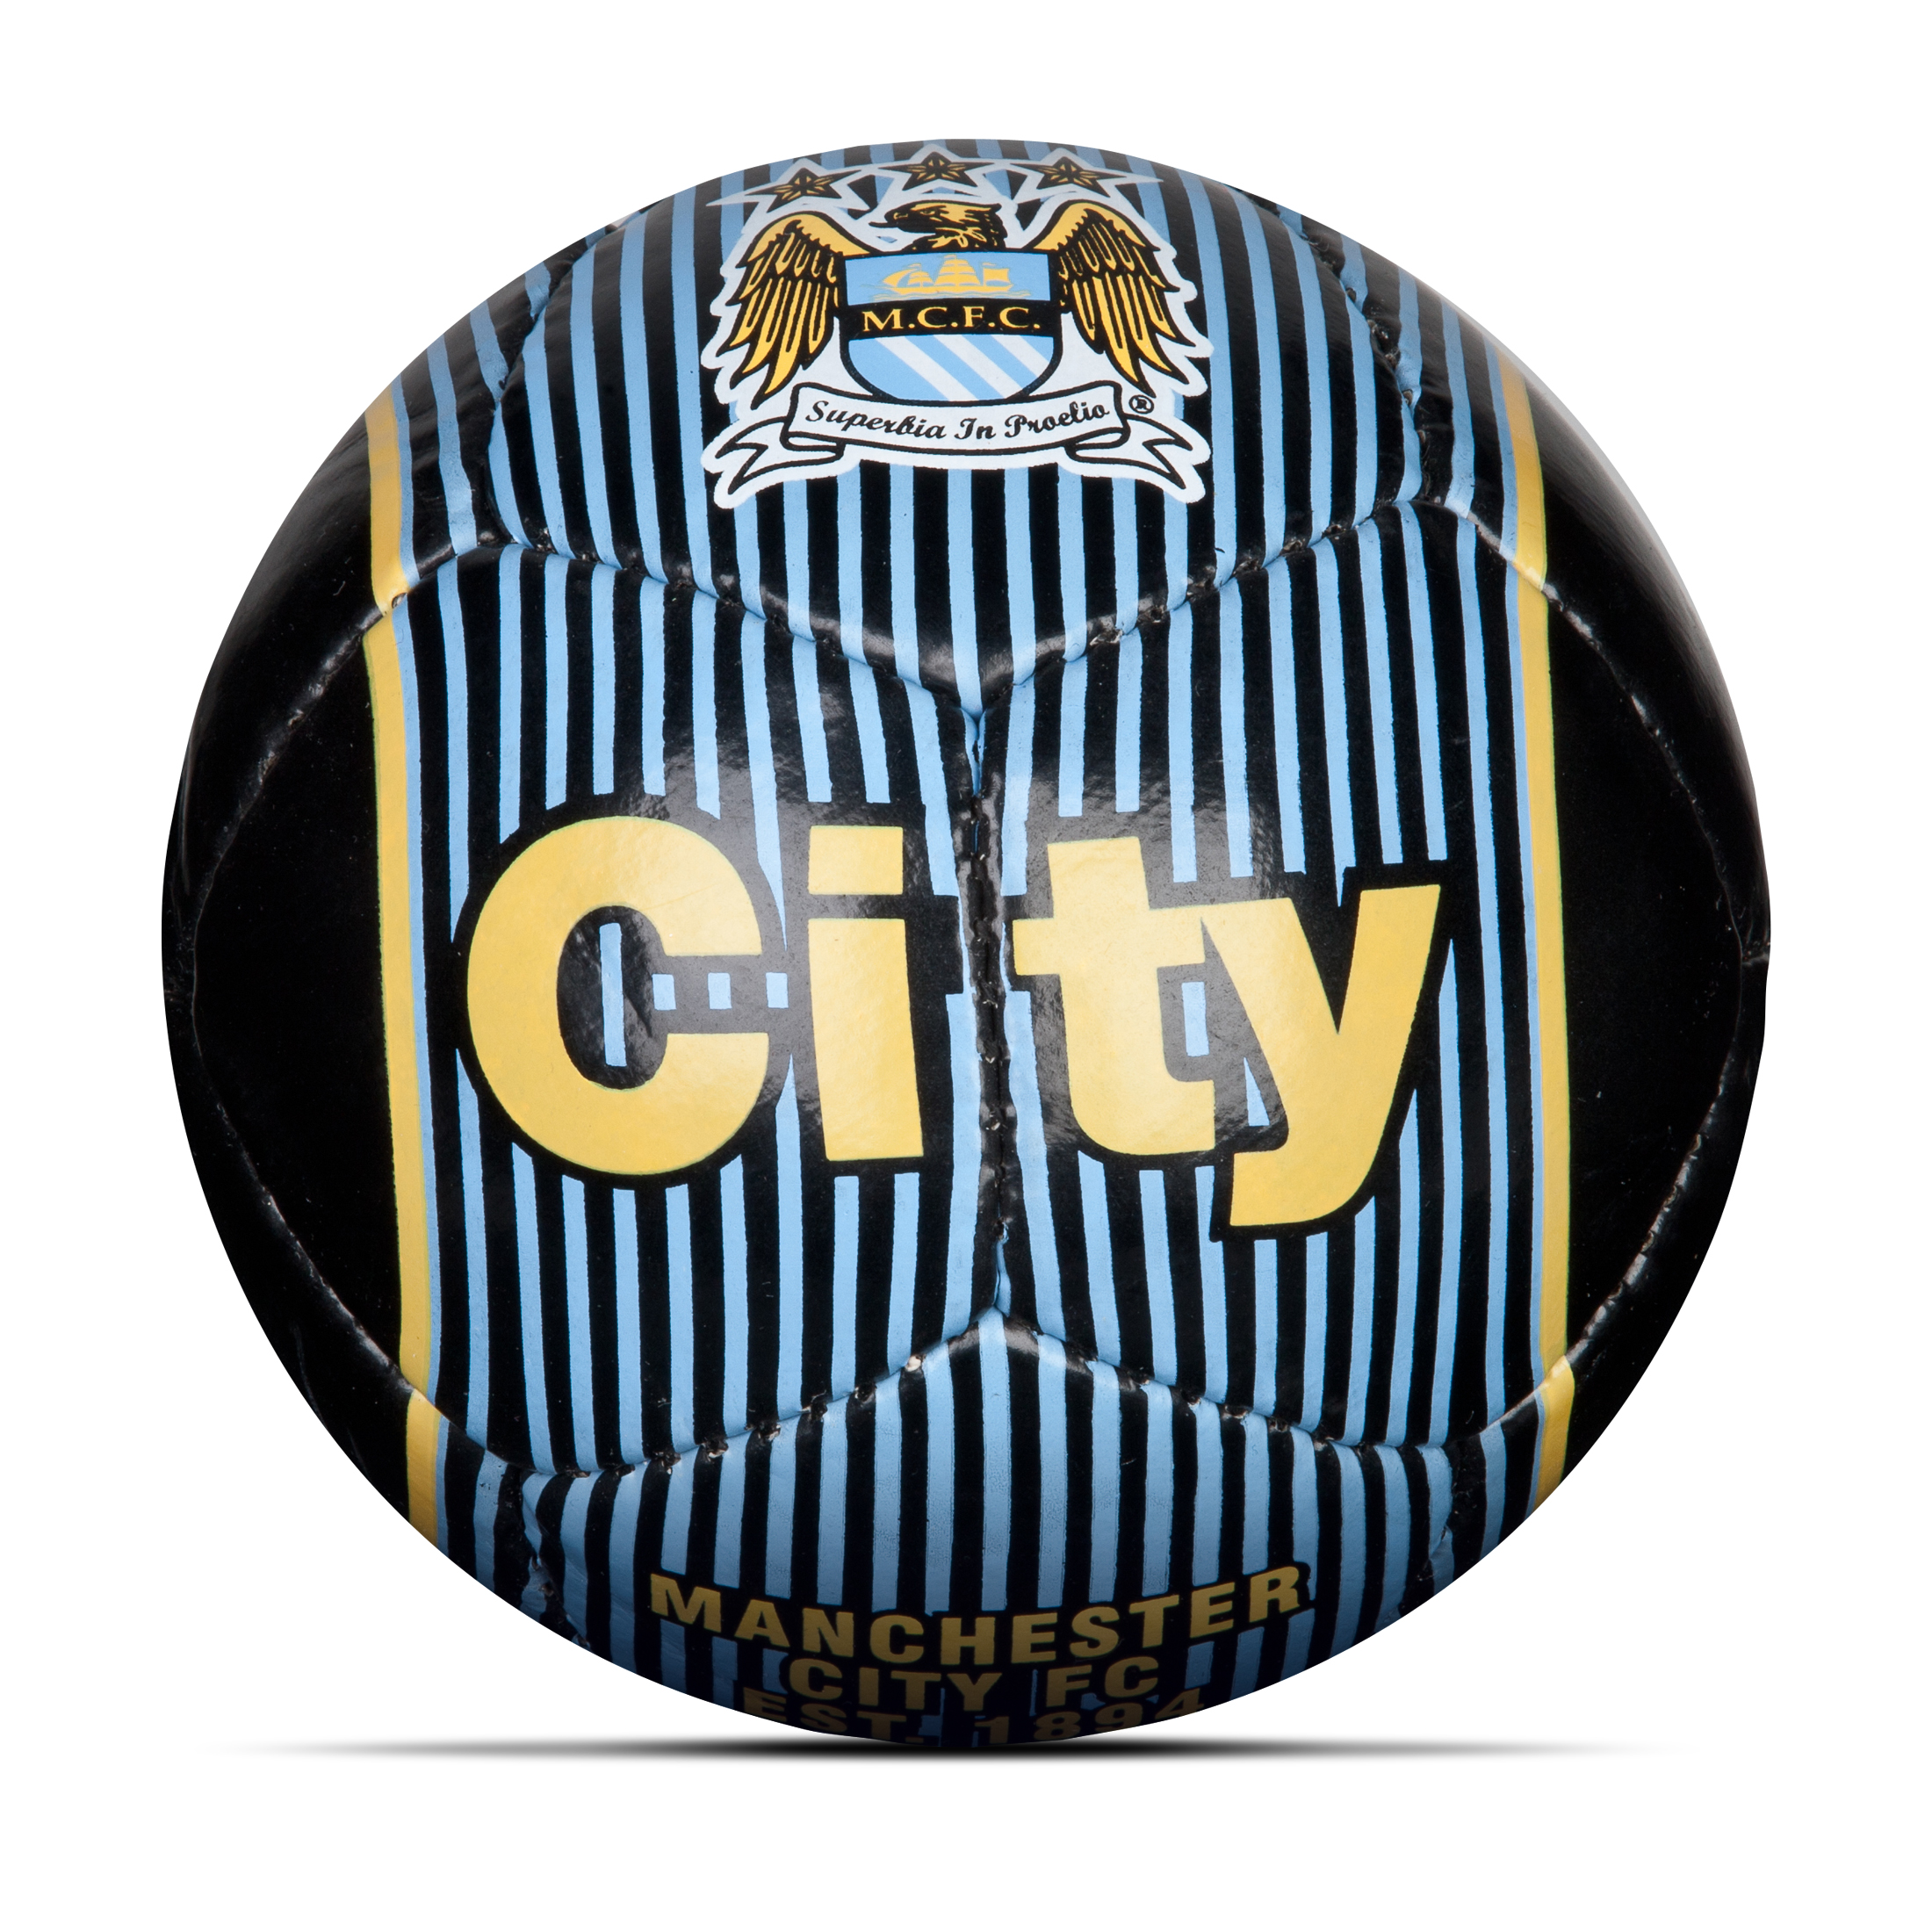 Manchester City Home Football - Size 2 - Black/Sky